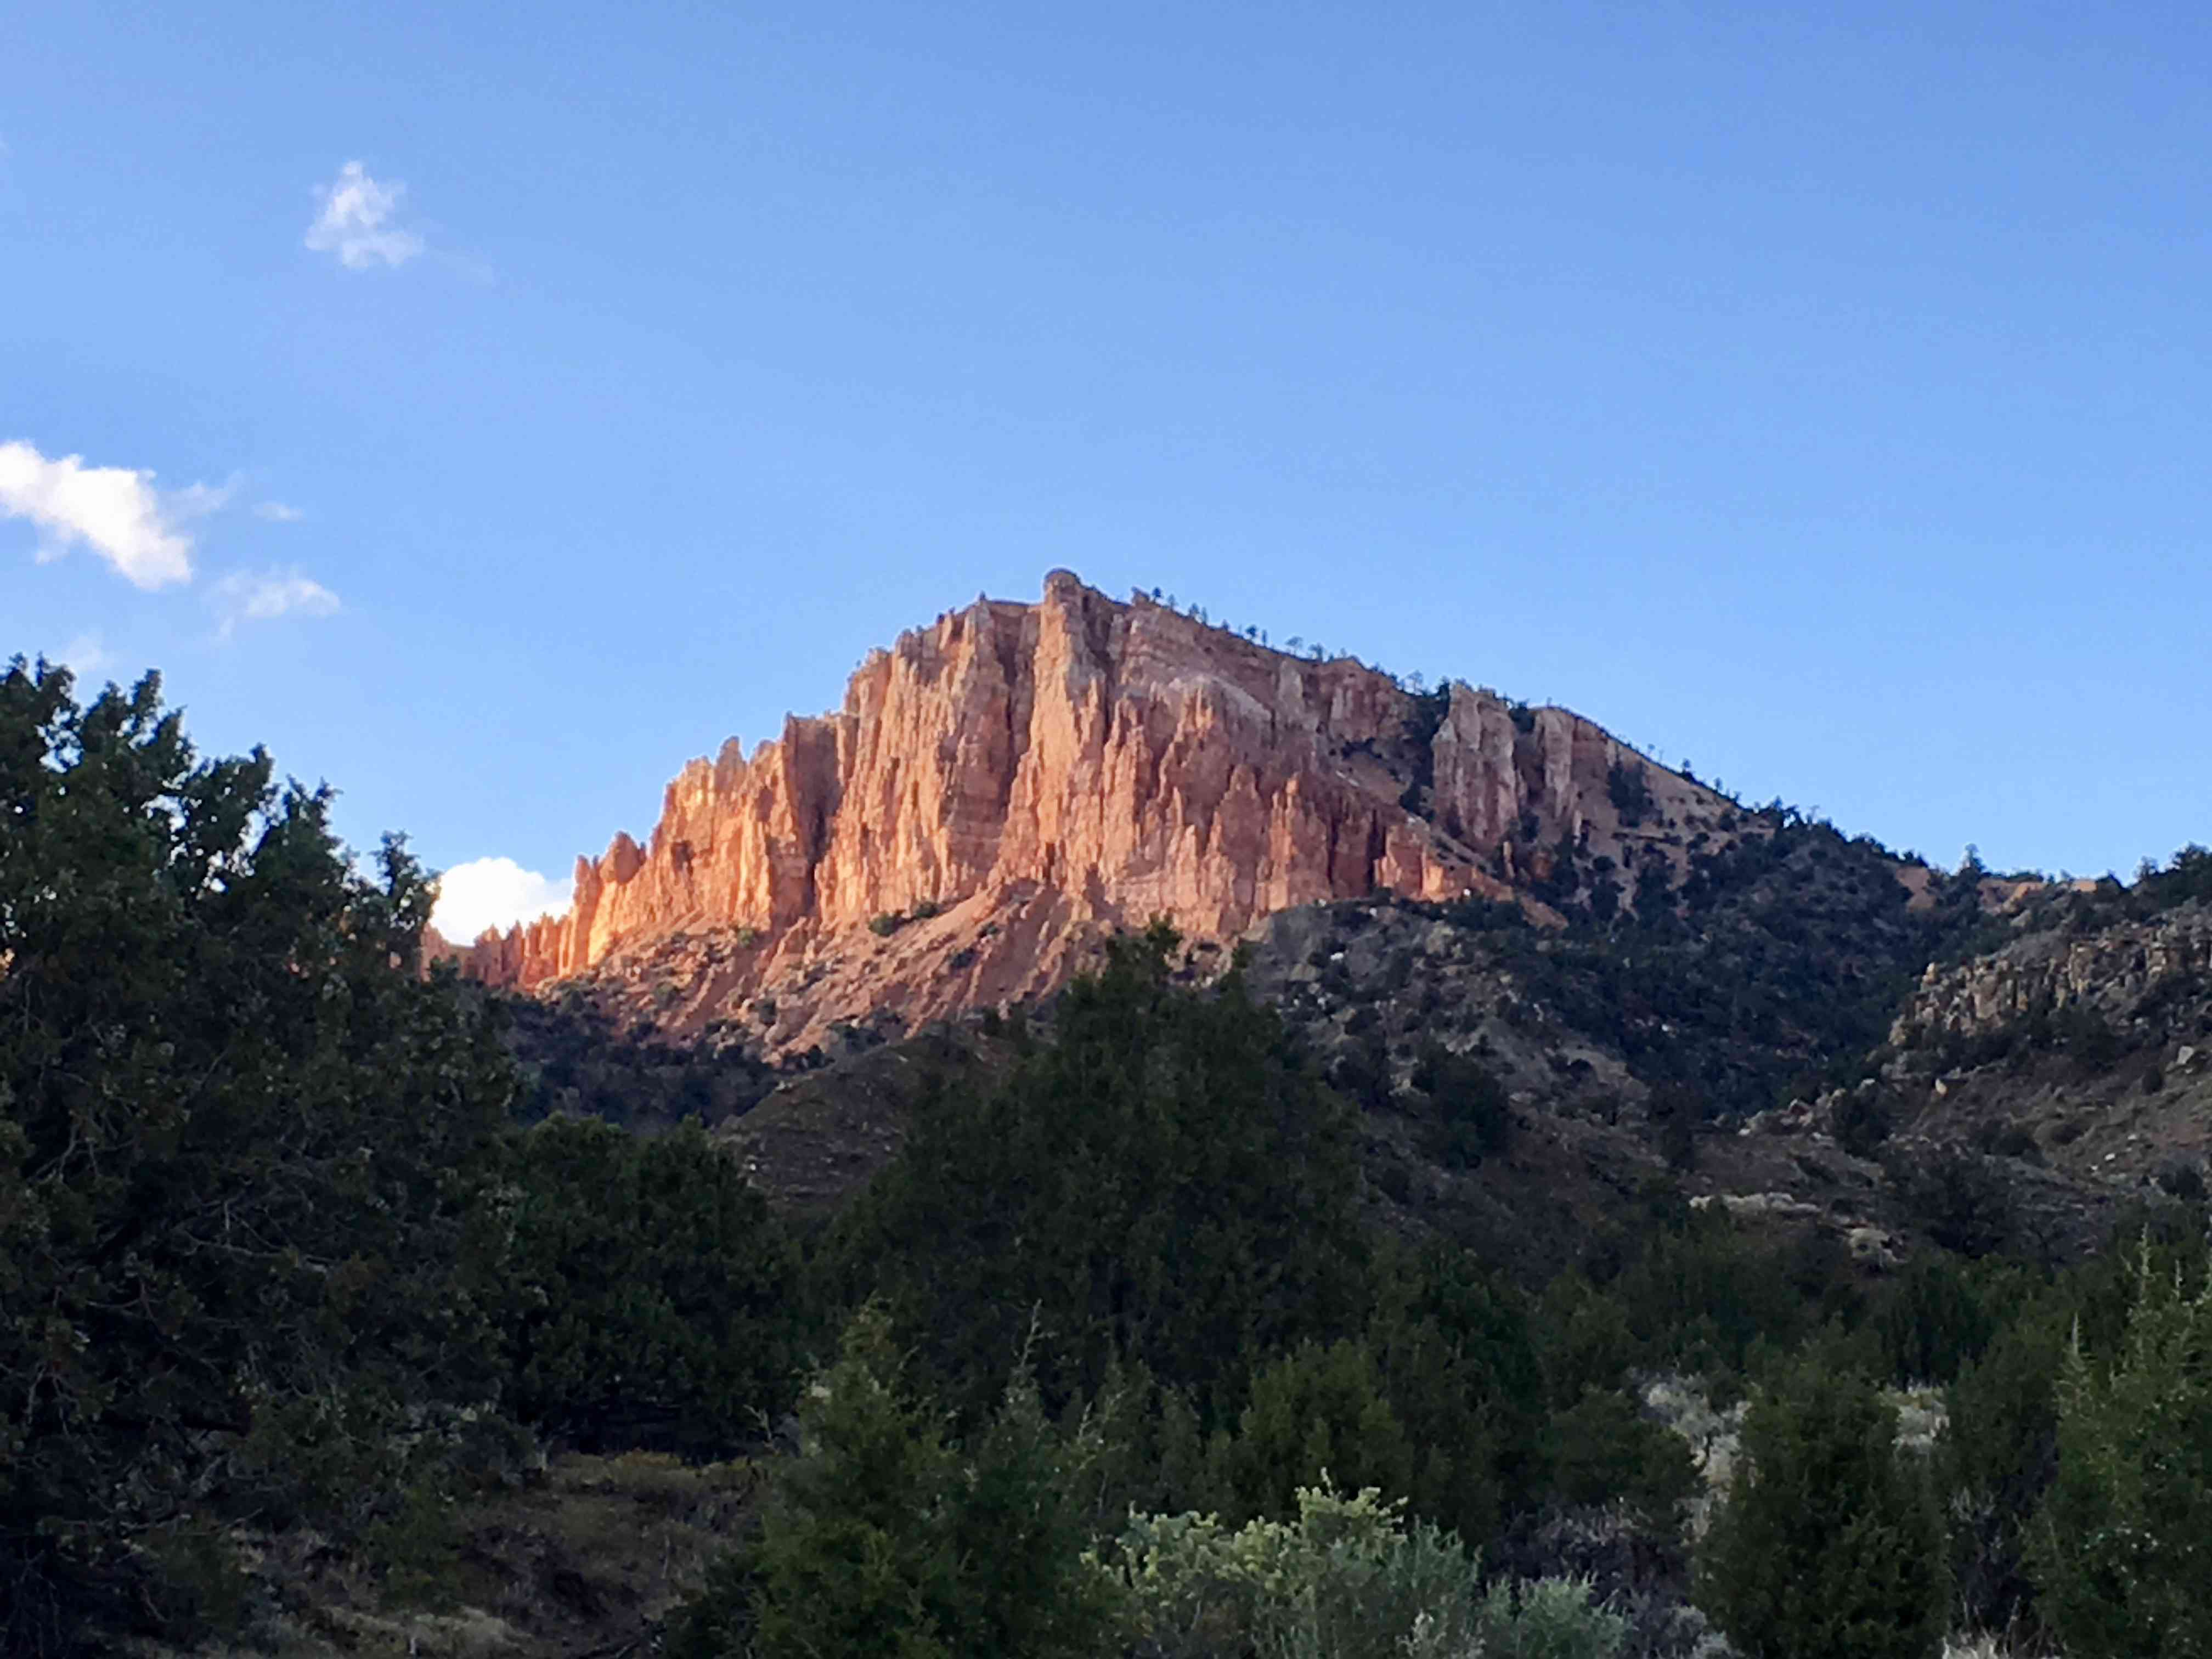 A red cliff face is illuminated by the morning sun in Bryce Canyon